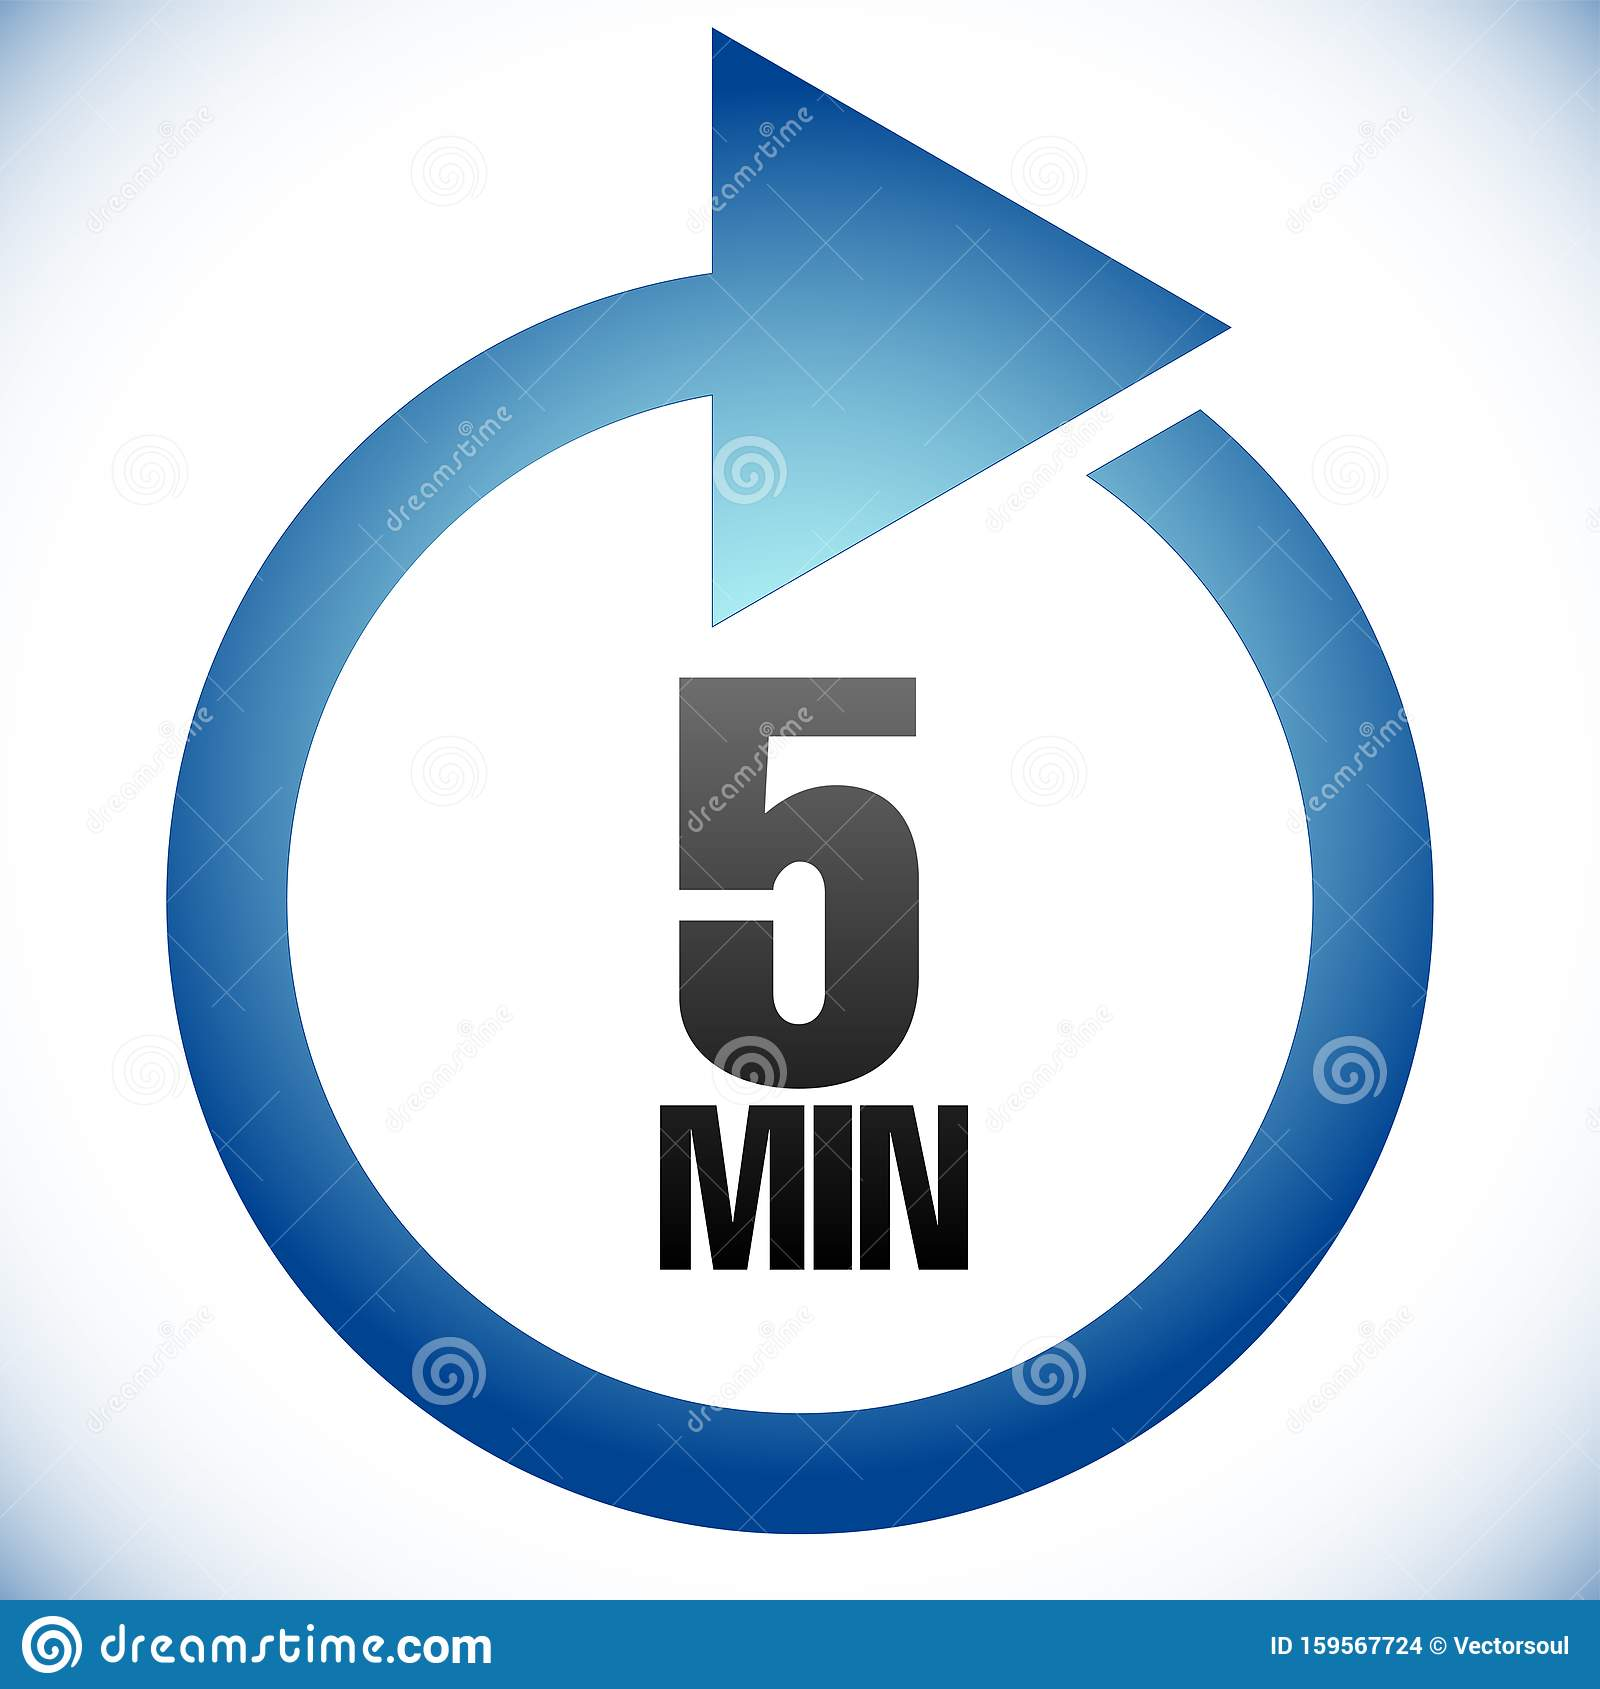 5 Minute Turnaround Time Tat Icon Interval For Processing